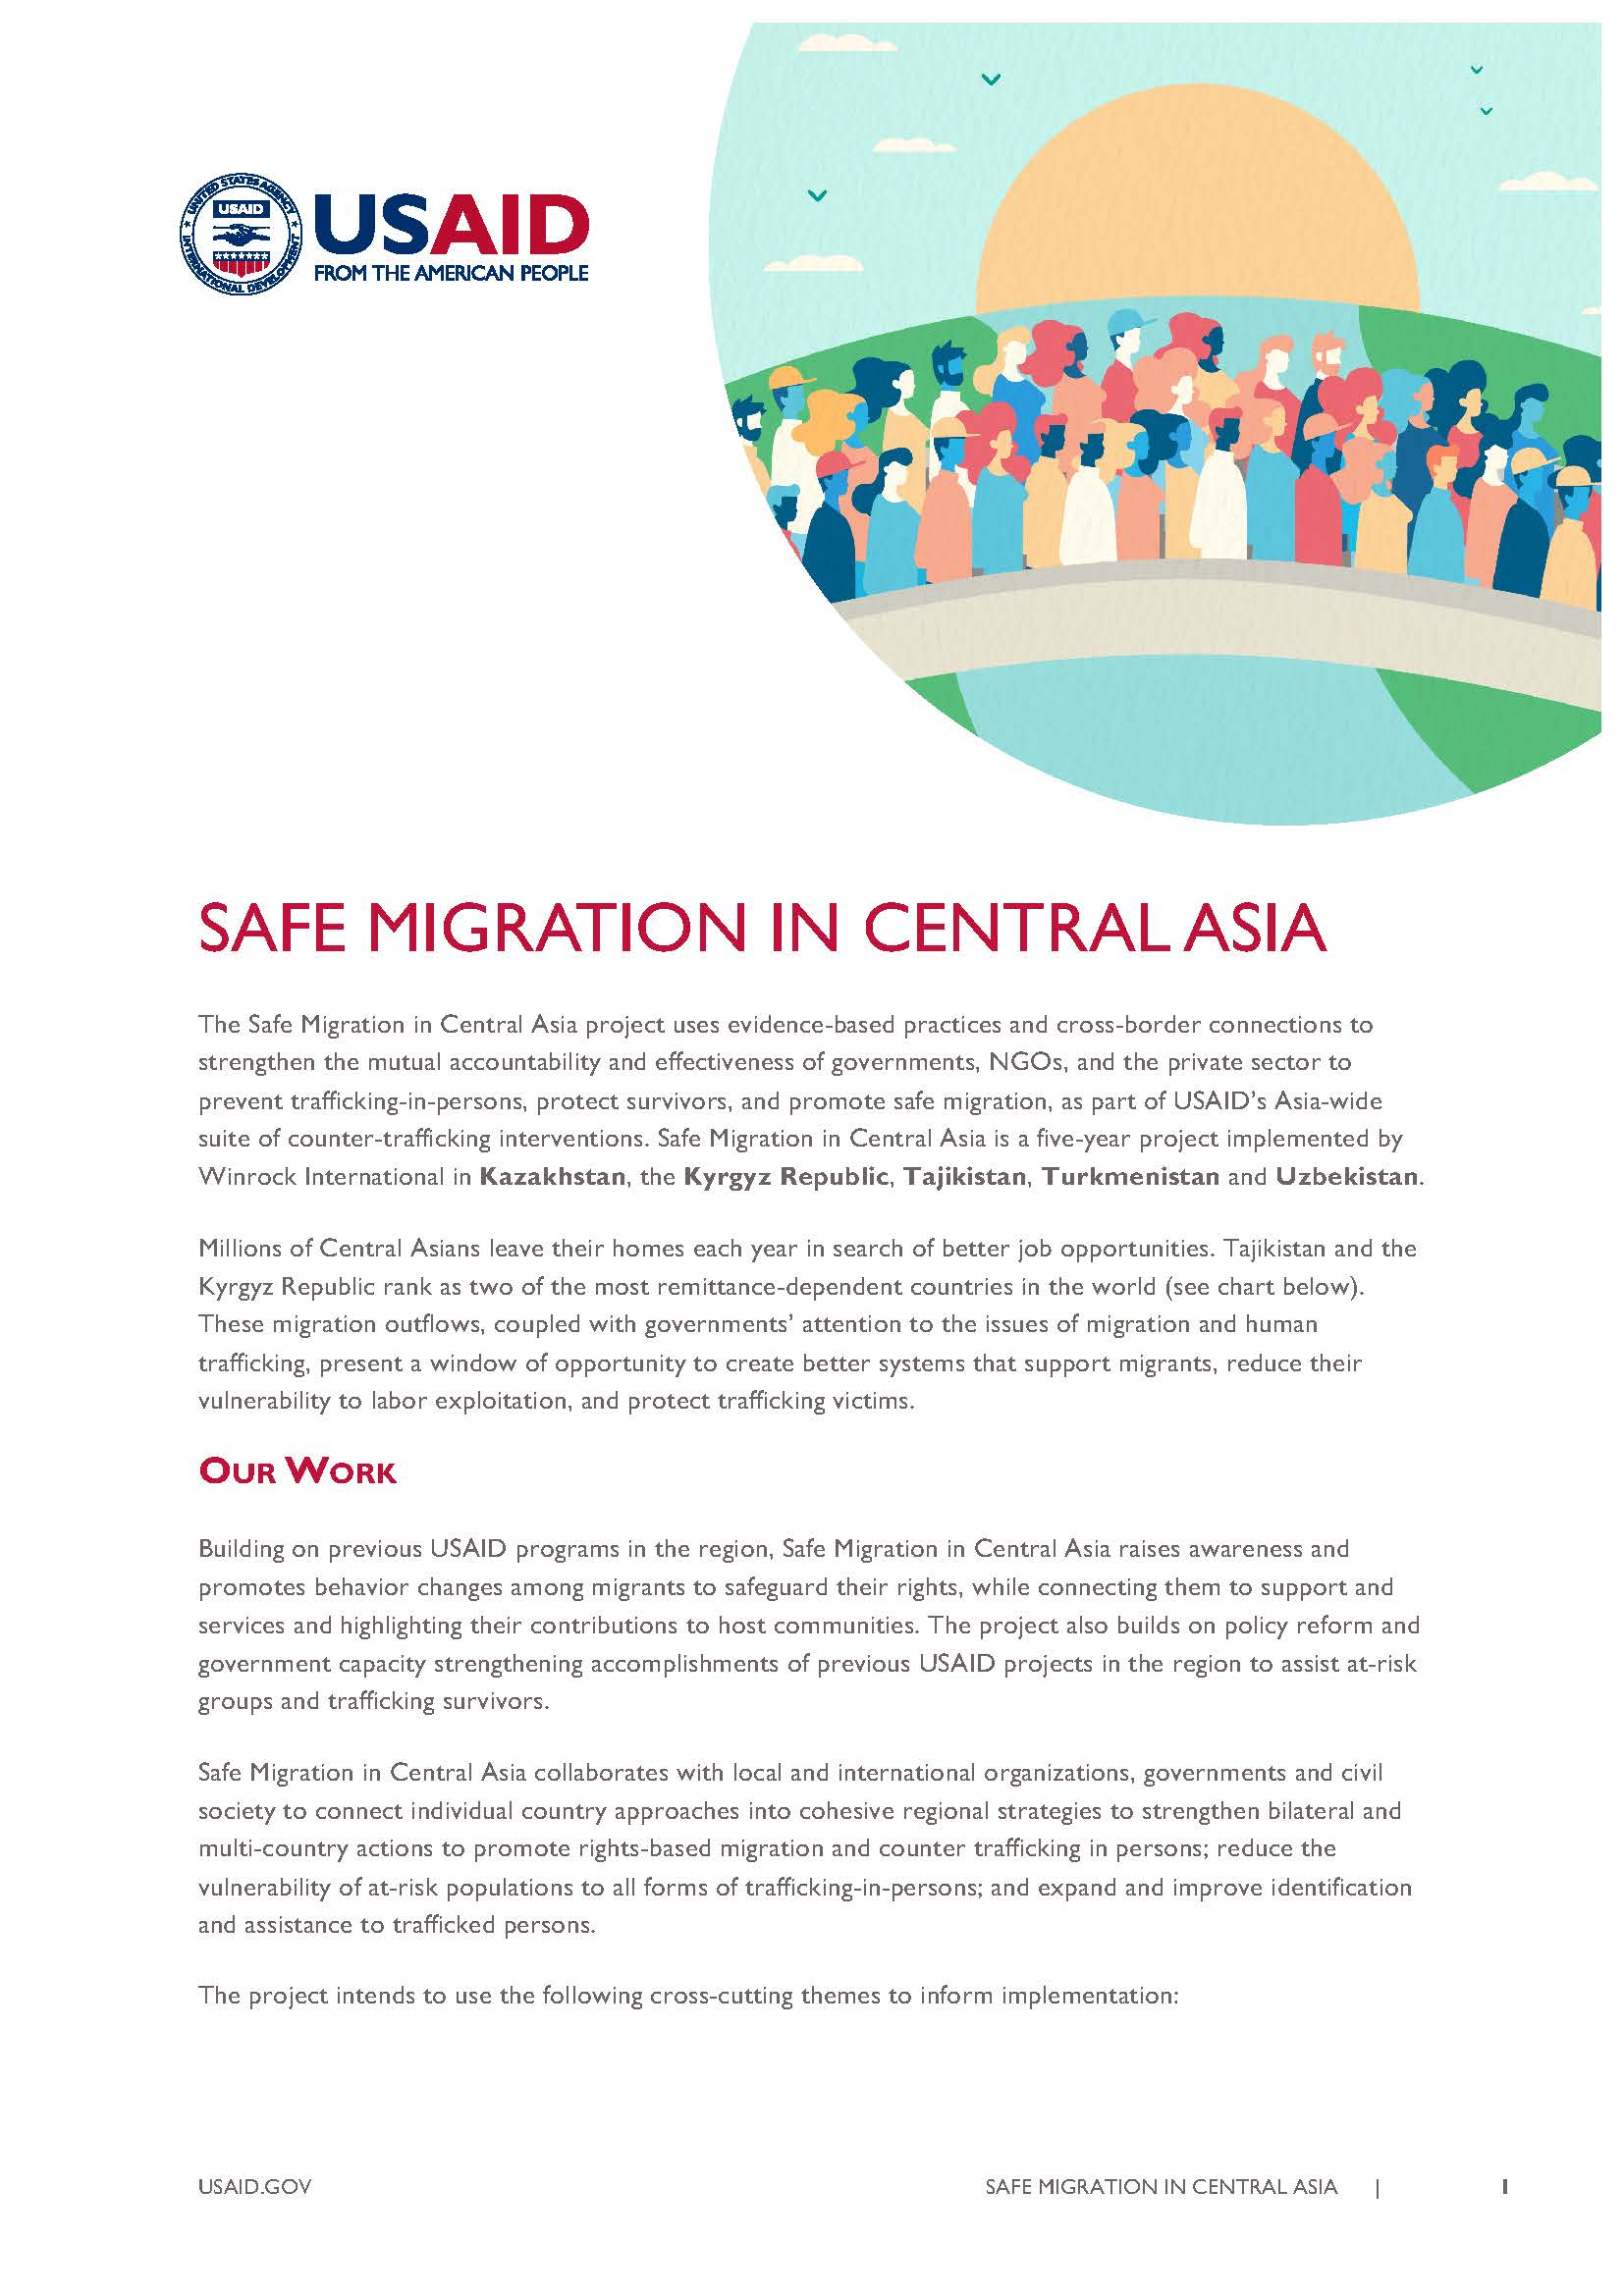 Safe Migration in Central Asia Fact Sheet